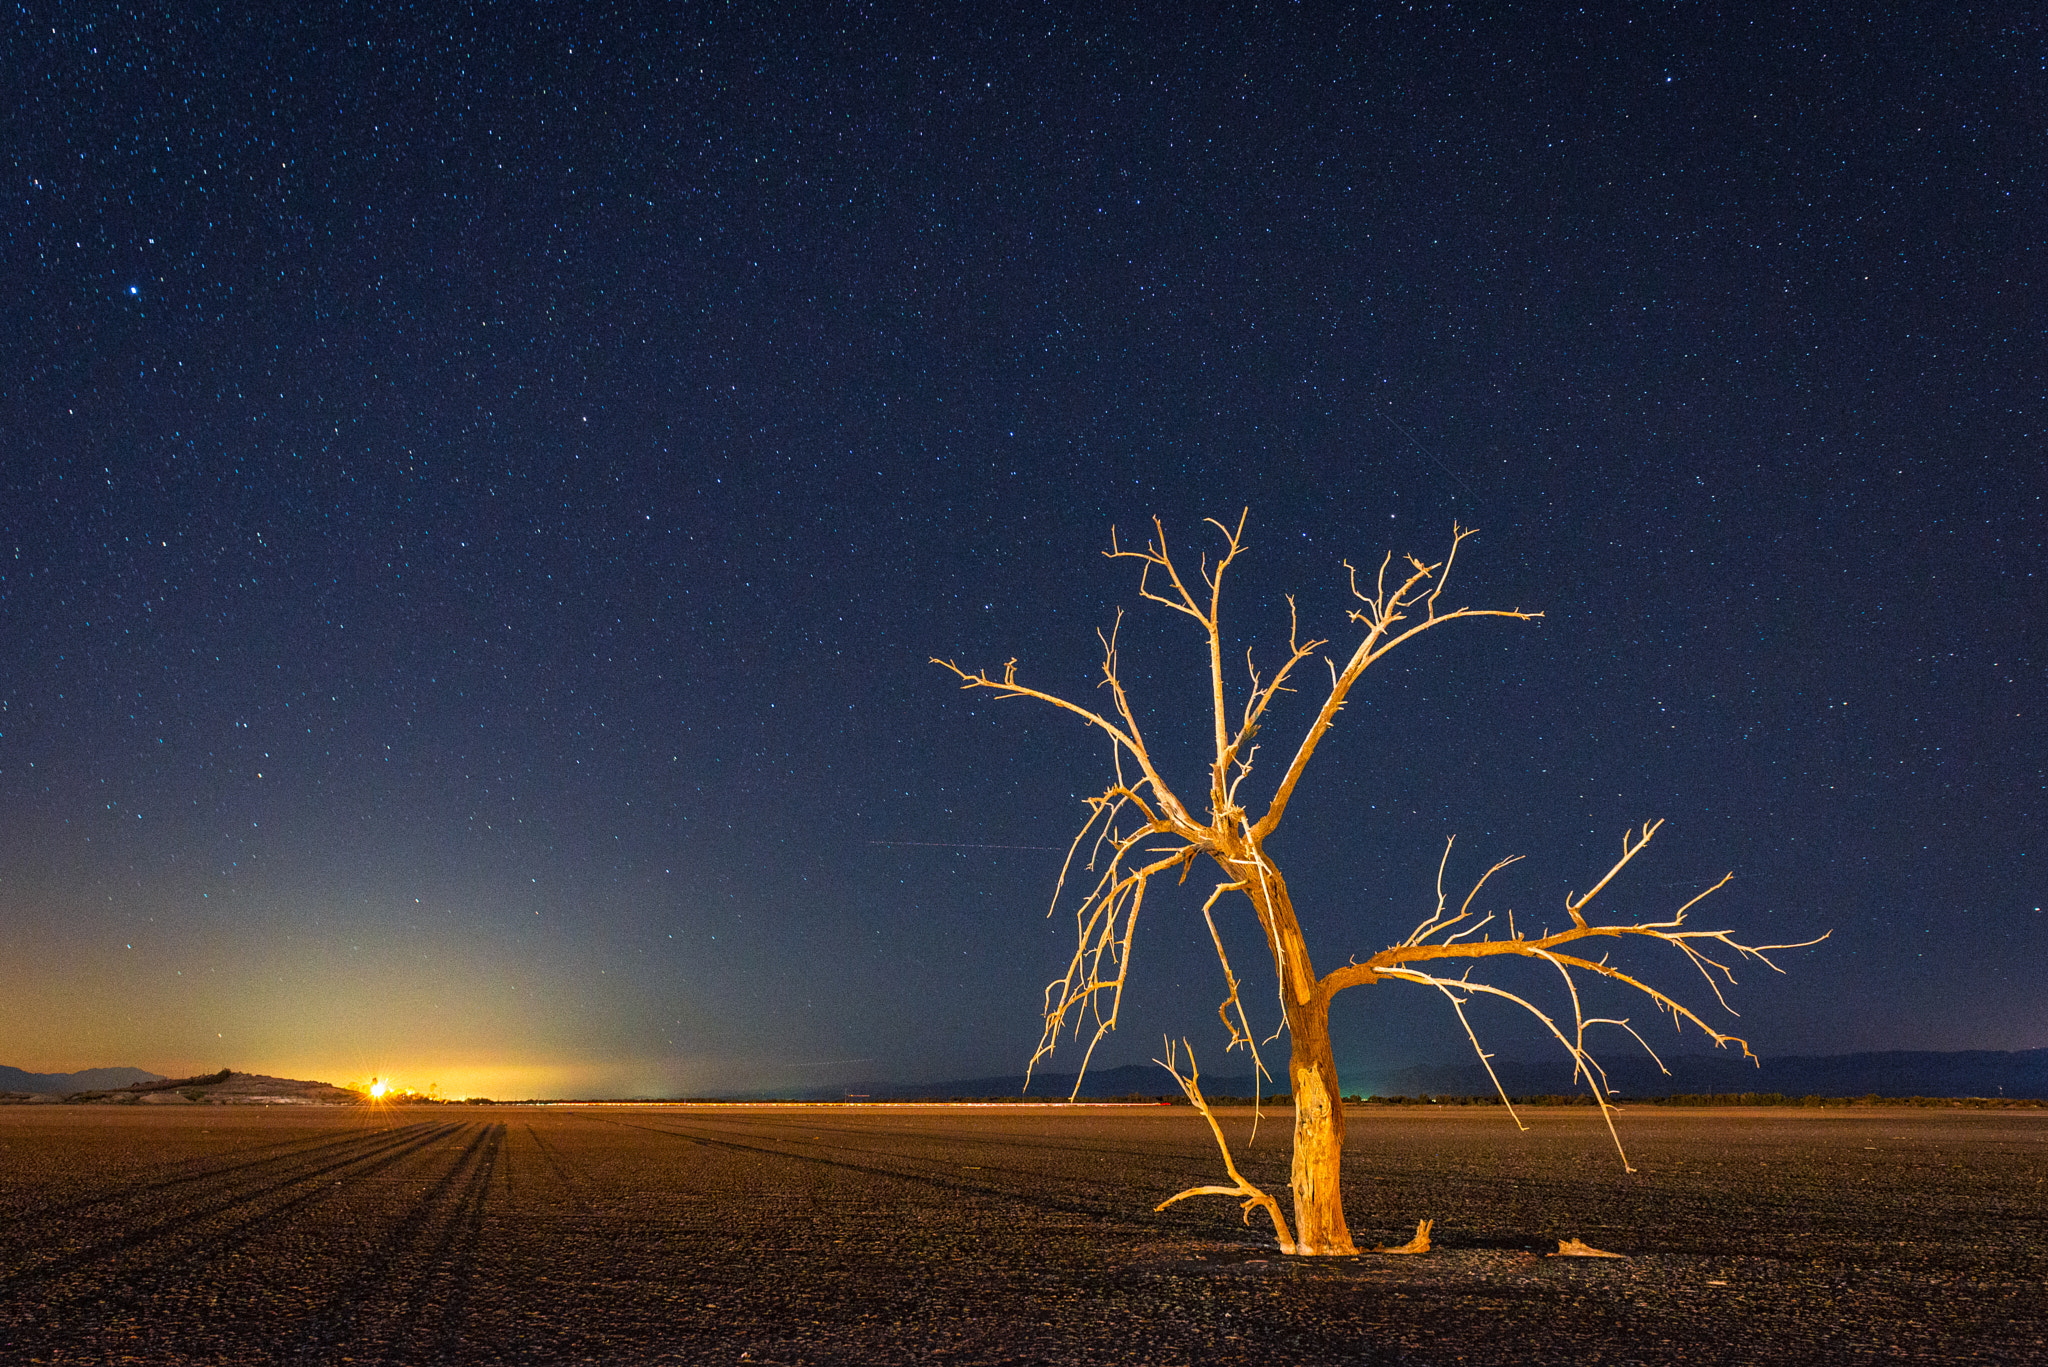 Photograph Lone Tree by Keith Skelton on 500px